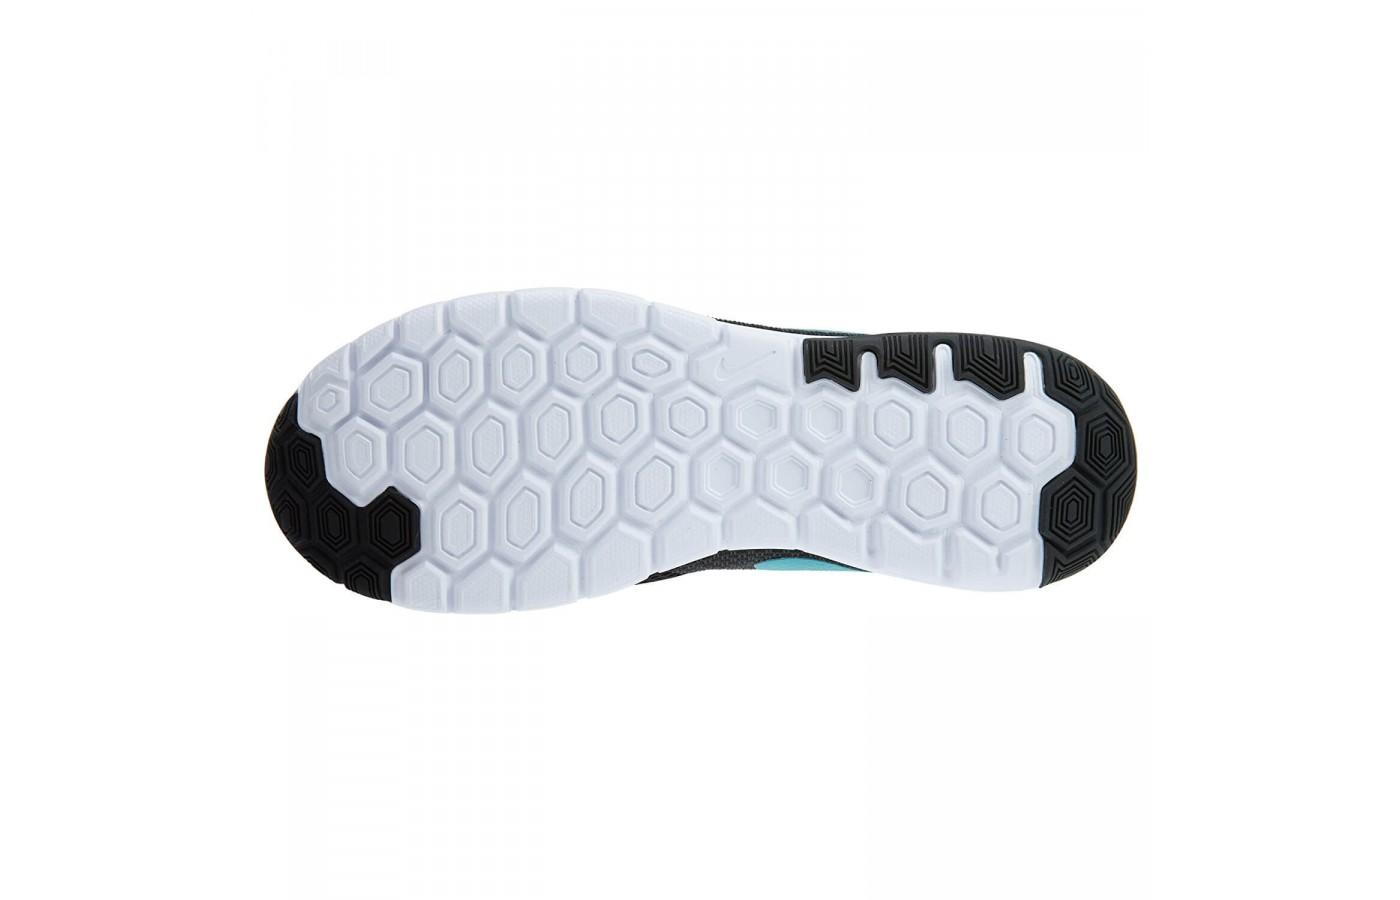 ef48c1d9f613 ... The outsole of the Nike Flex Experience RN 6 is durable and the  hexagonal lugs provide ...